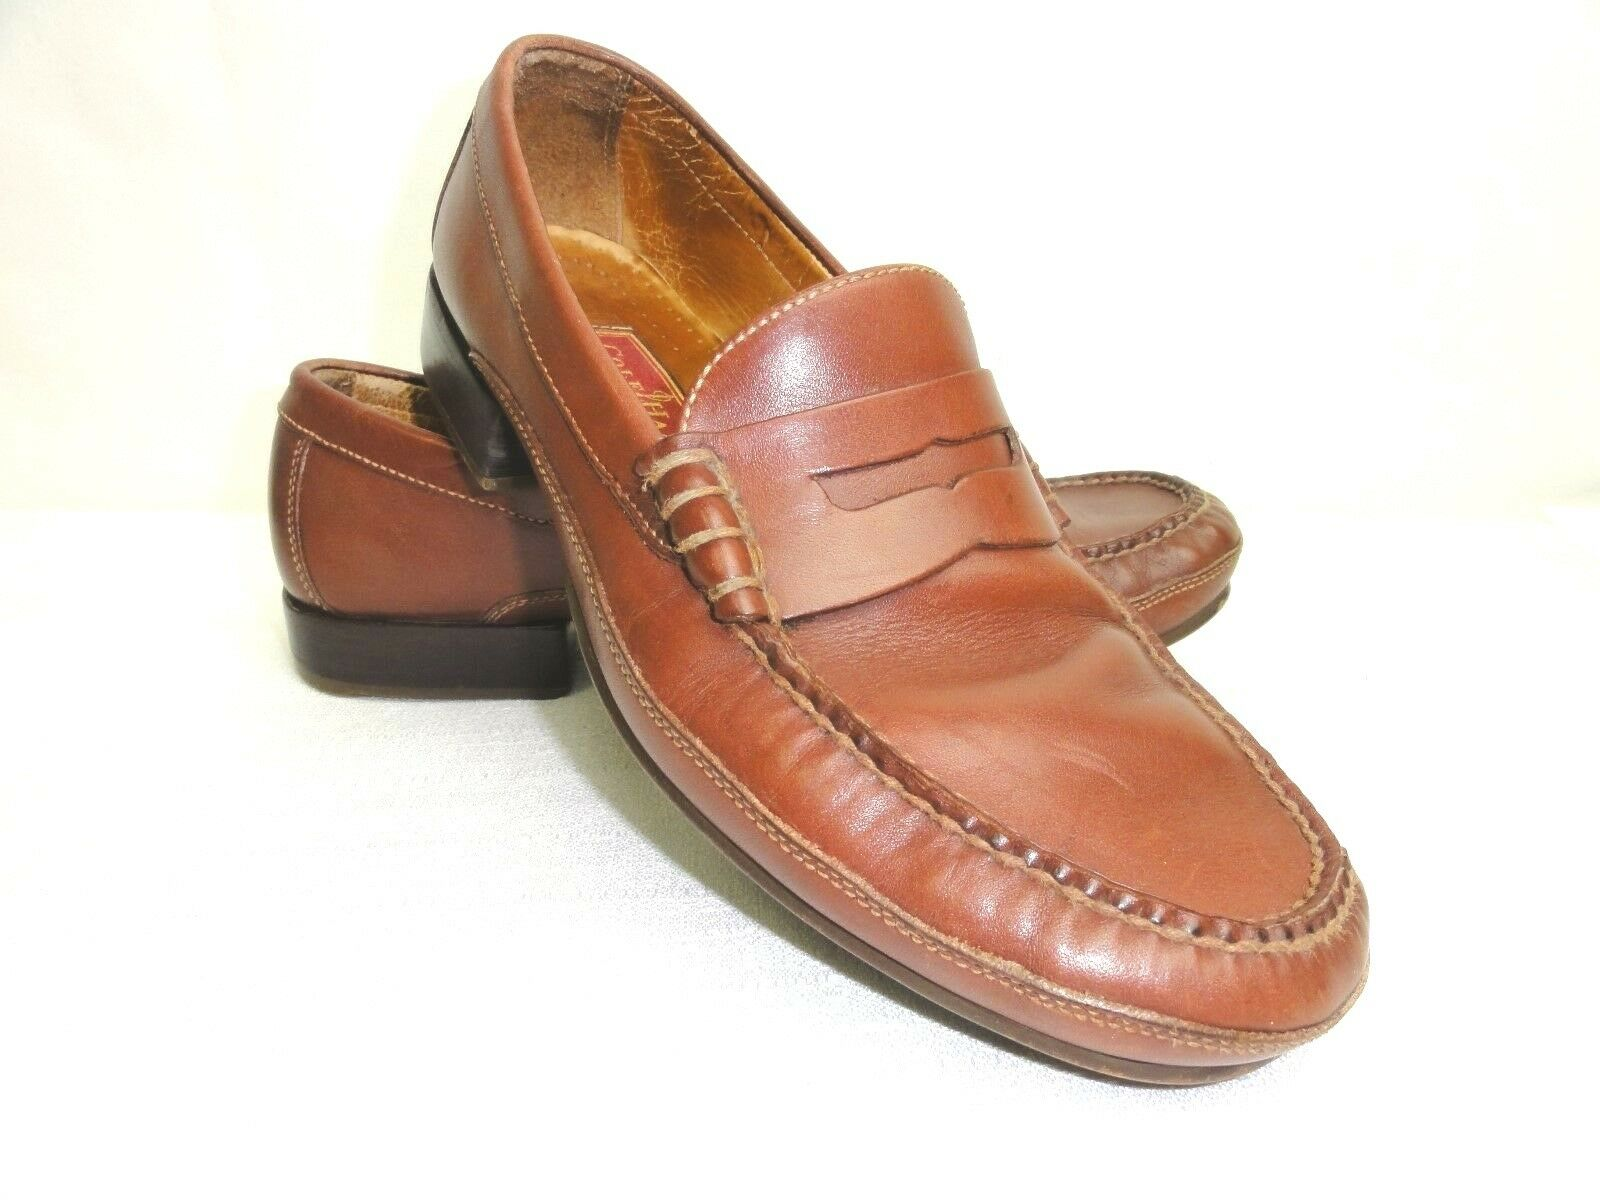 COLE-HAAN Country Mens Leather Sz 9 1 2M shoes 2819 Slip-On Penny Loafers Brazil